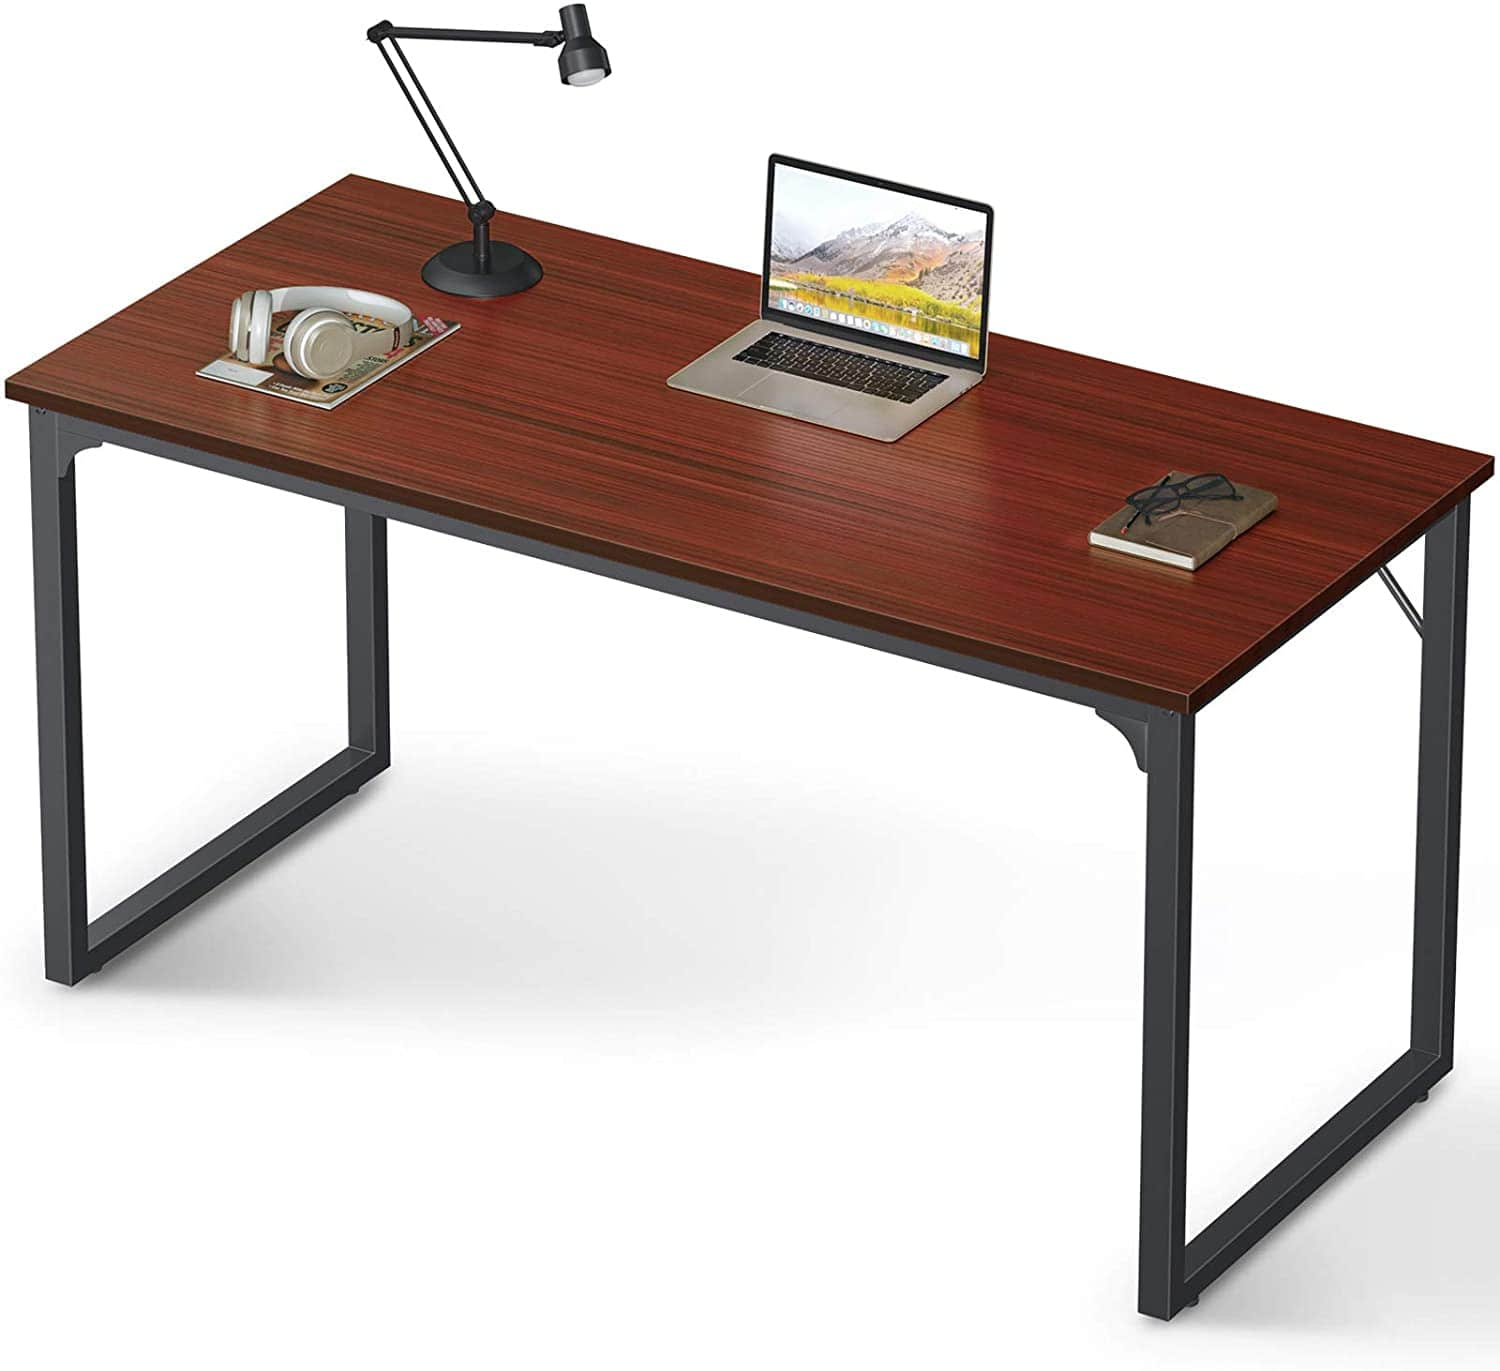 "Coleshome Computer Desk 55"", Modern Simple Style Desk for Home Office, Sturdy Writing Desk,Teak $62.99 at amazon"